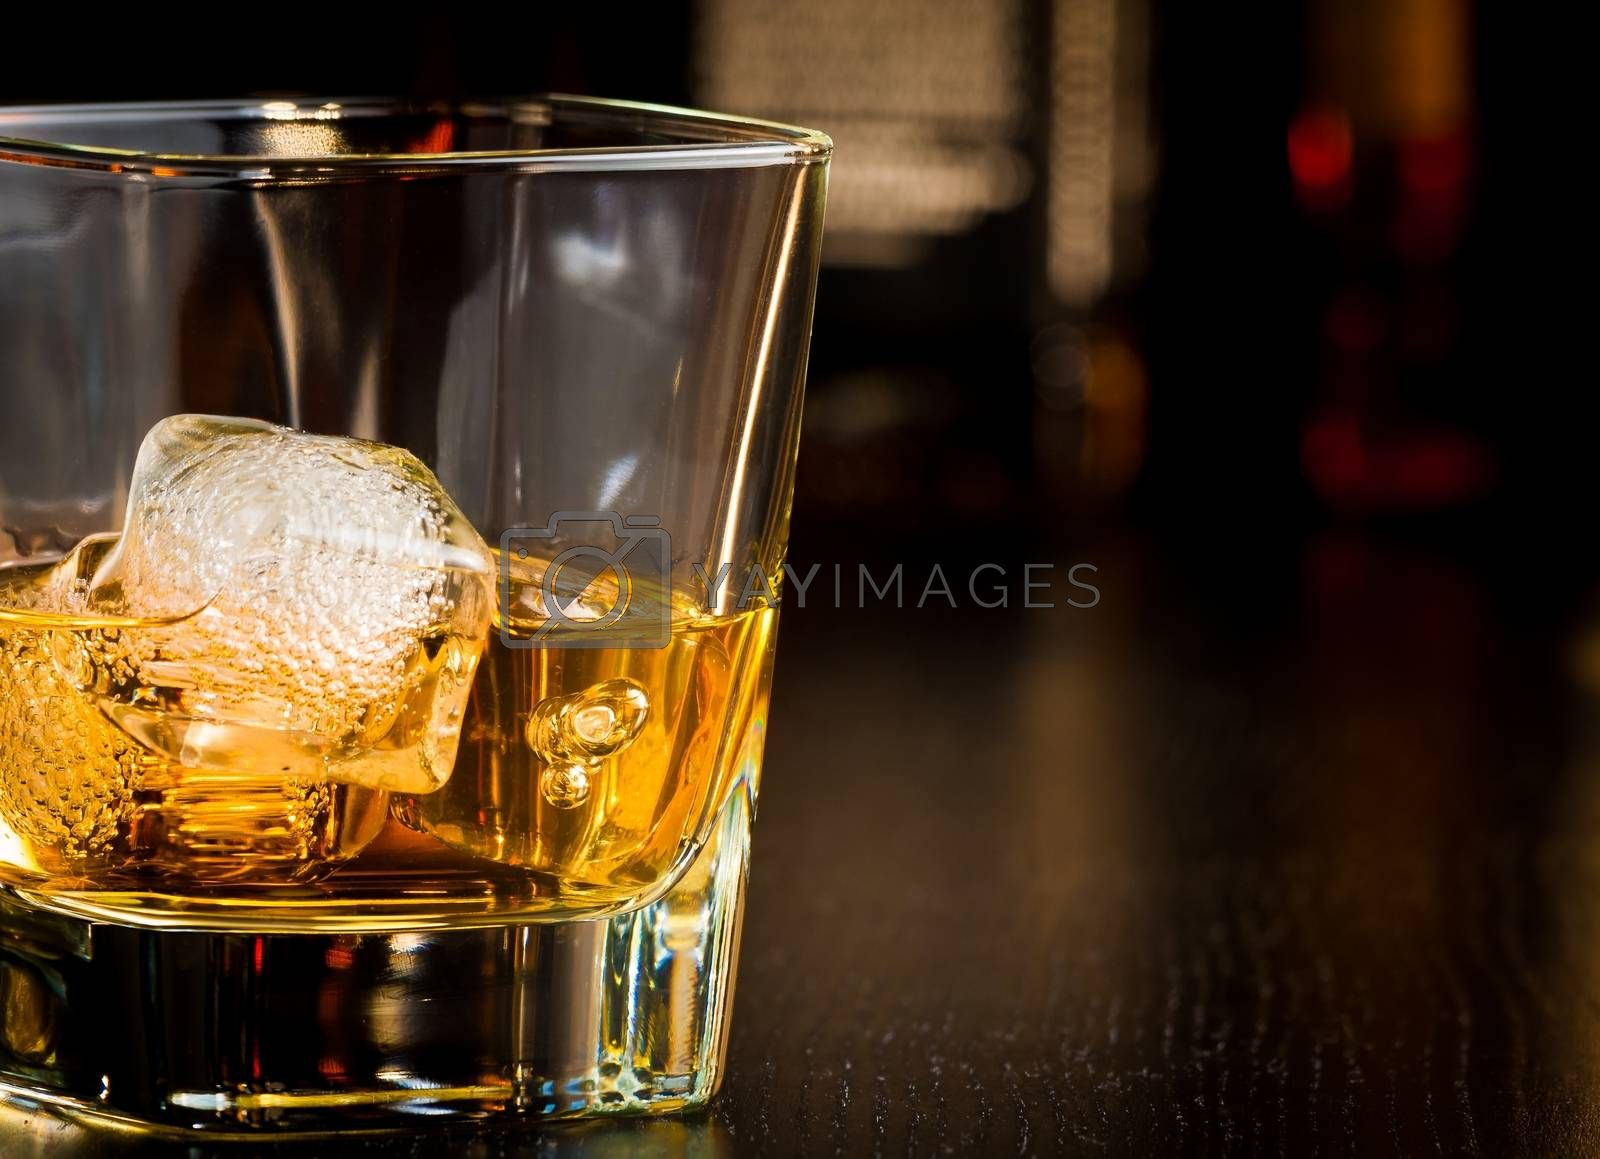 whiskey glass with ice in front of bottles with space for text by donfiore